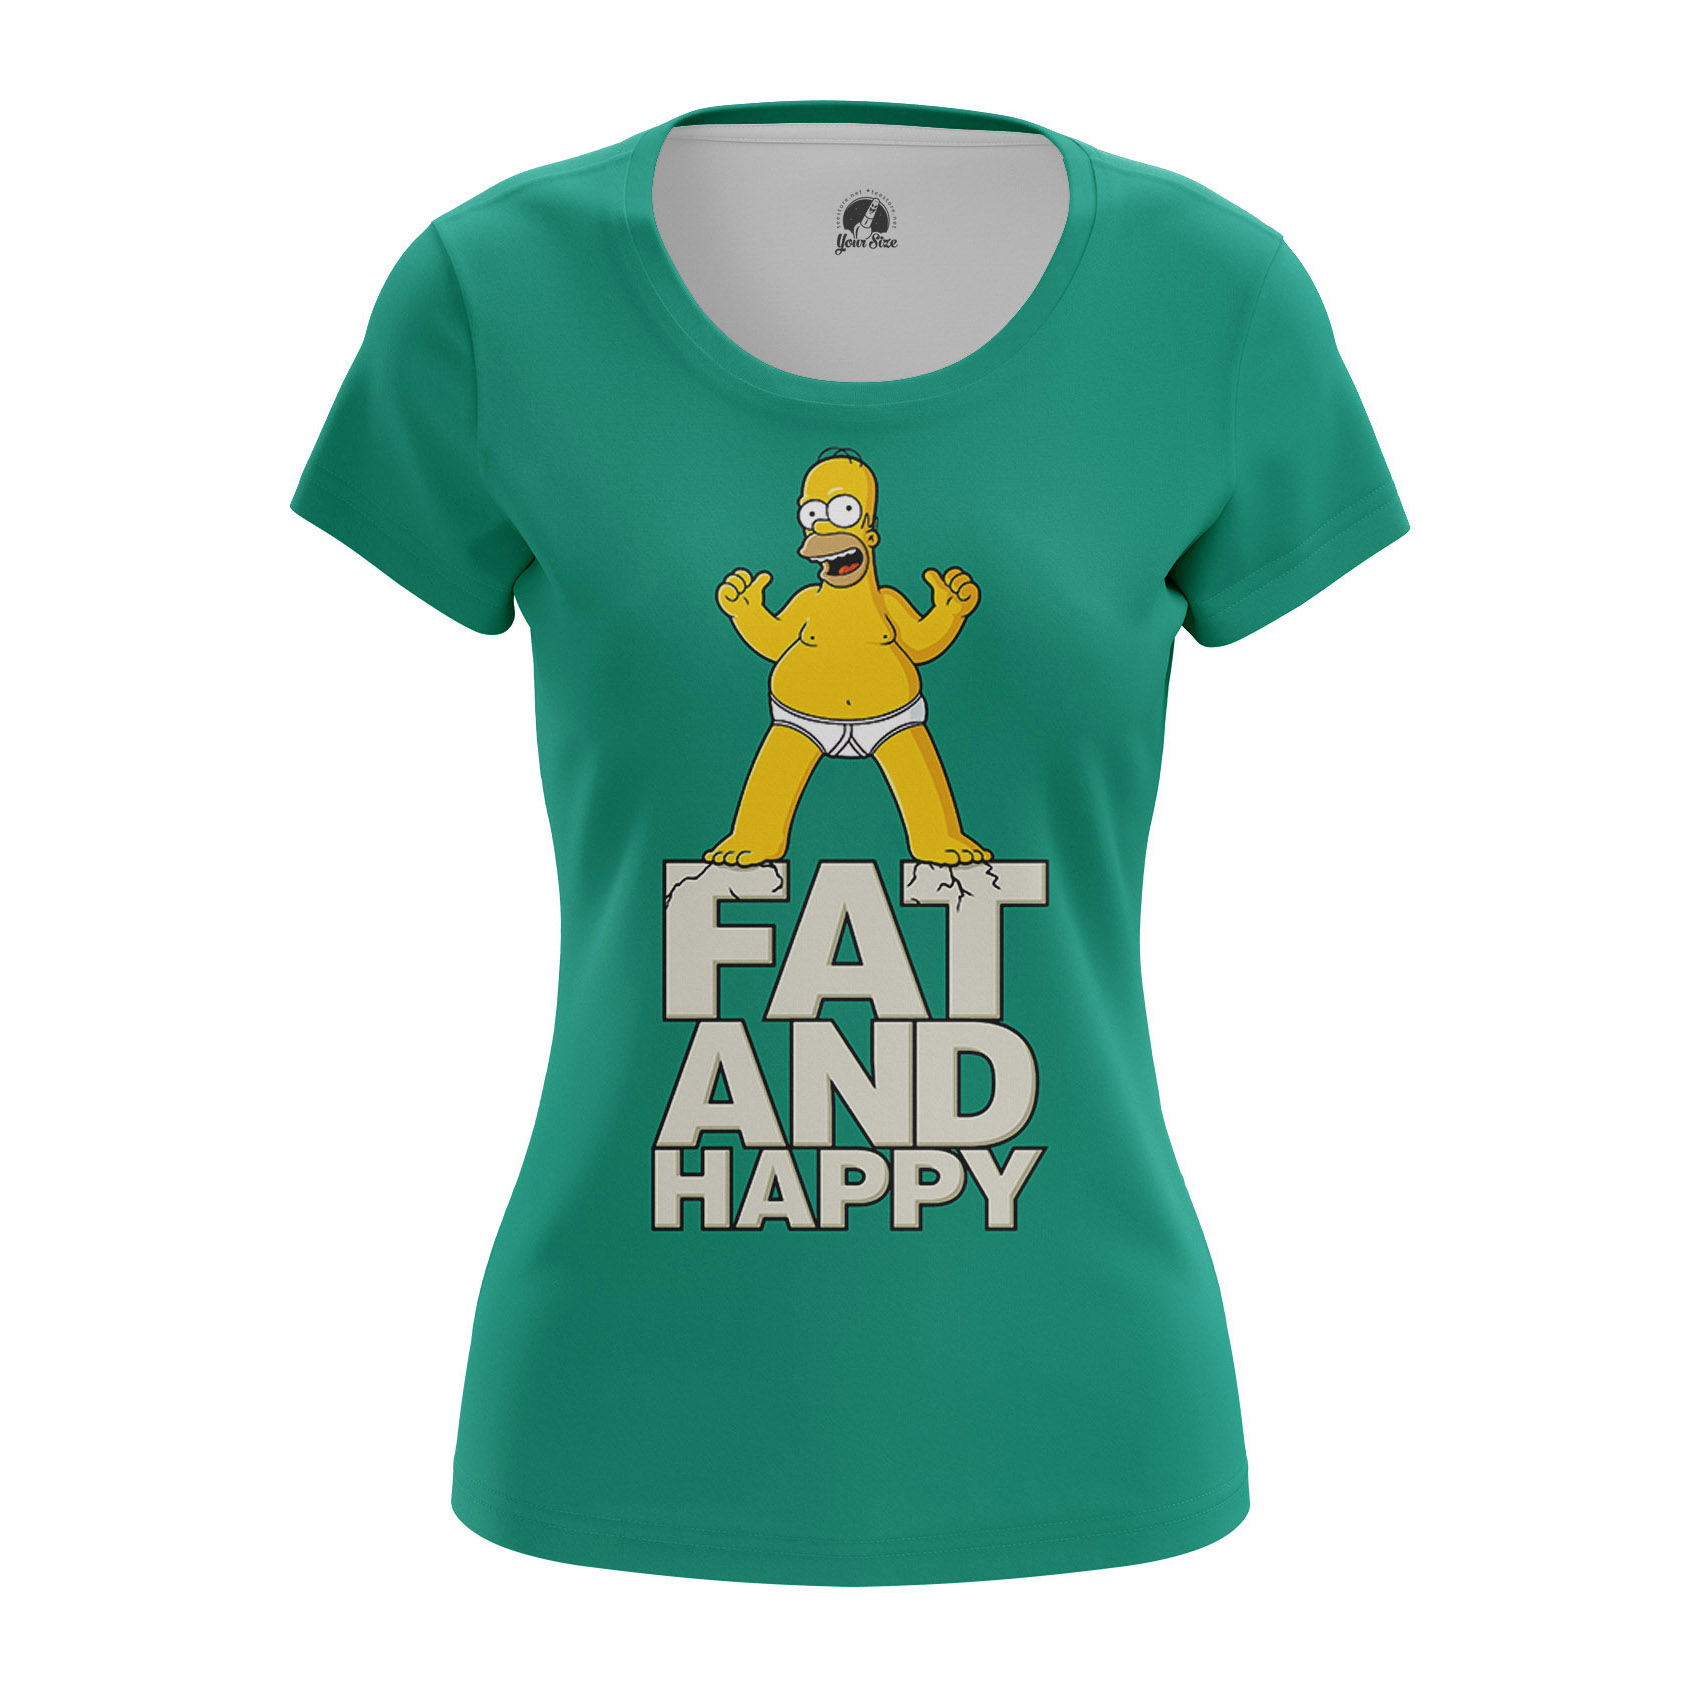 Collectibles Women'S Raglan Homer Simpson Fat And Happy